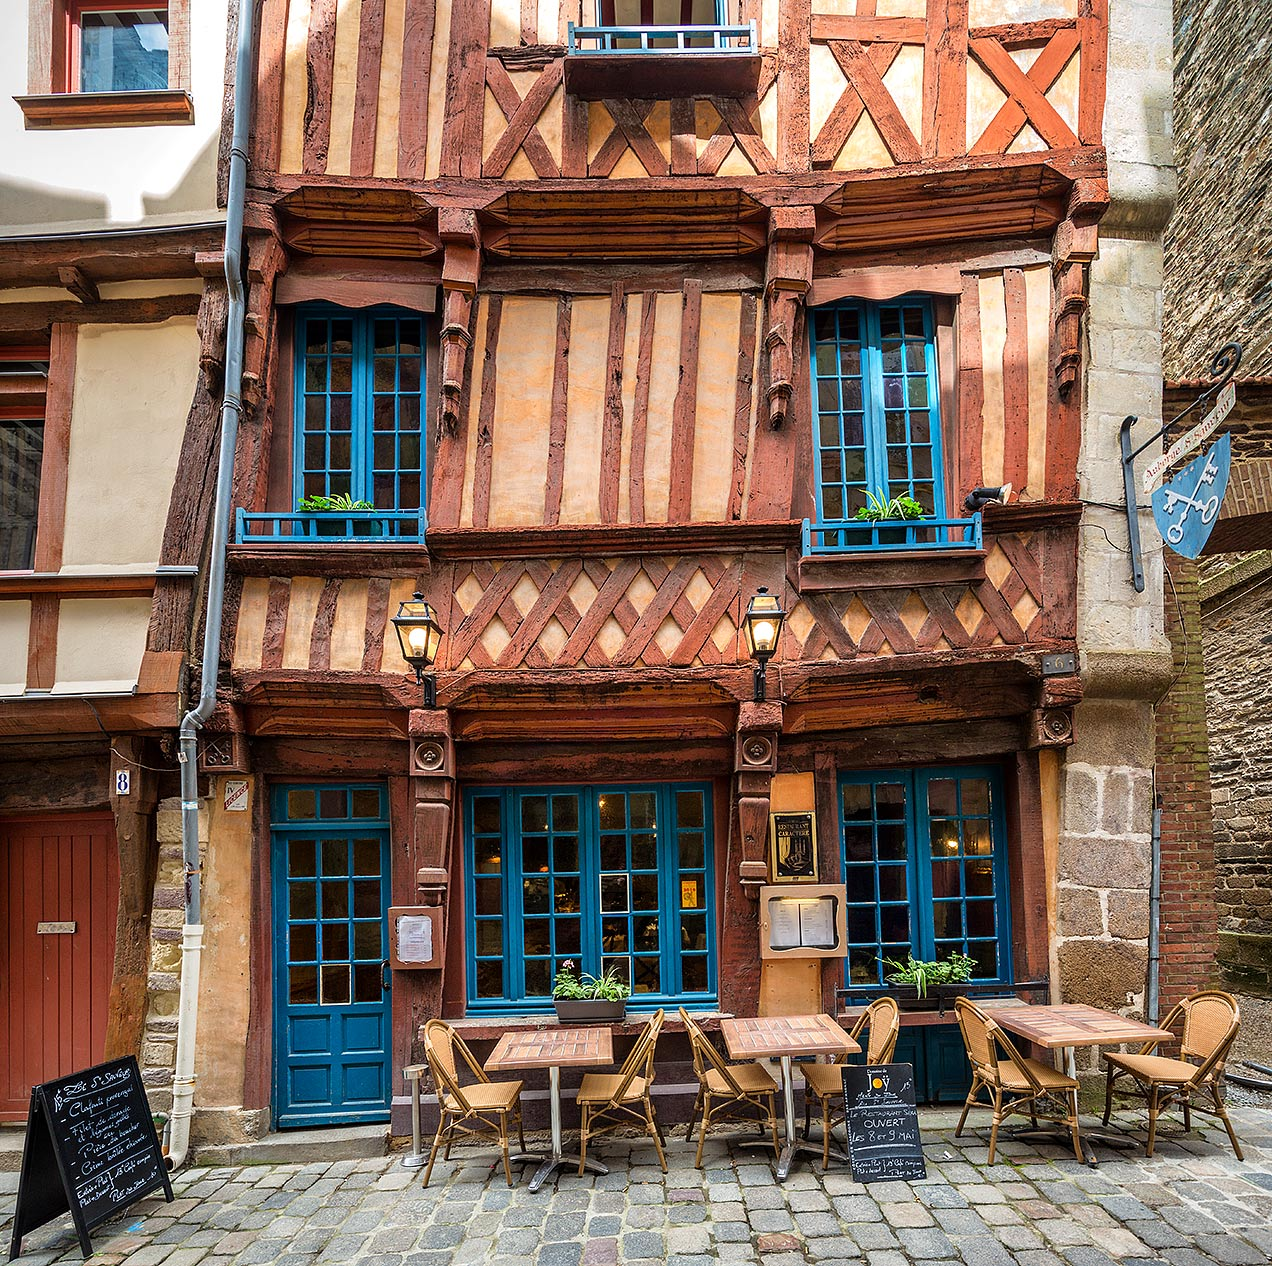 Timbered frame cafe building in Rennes